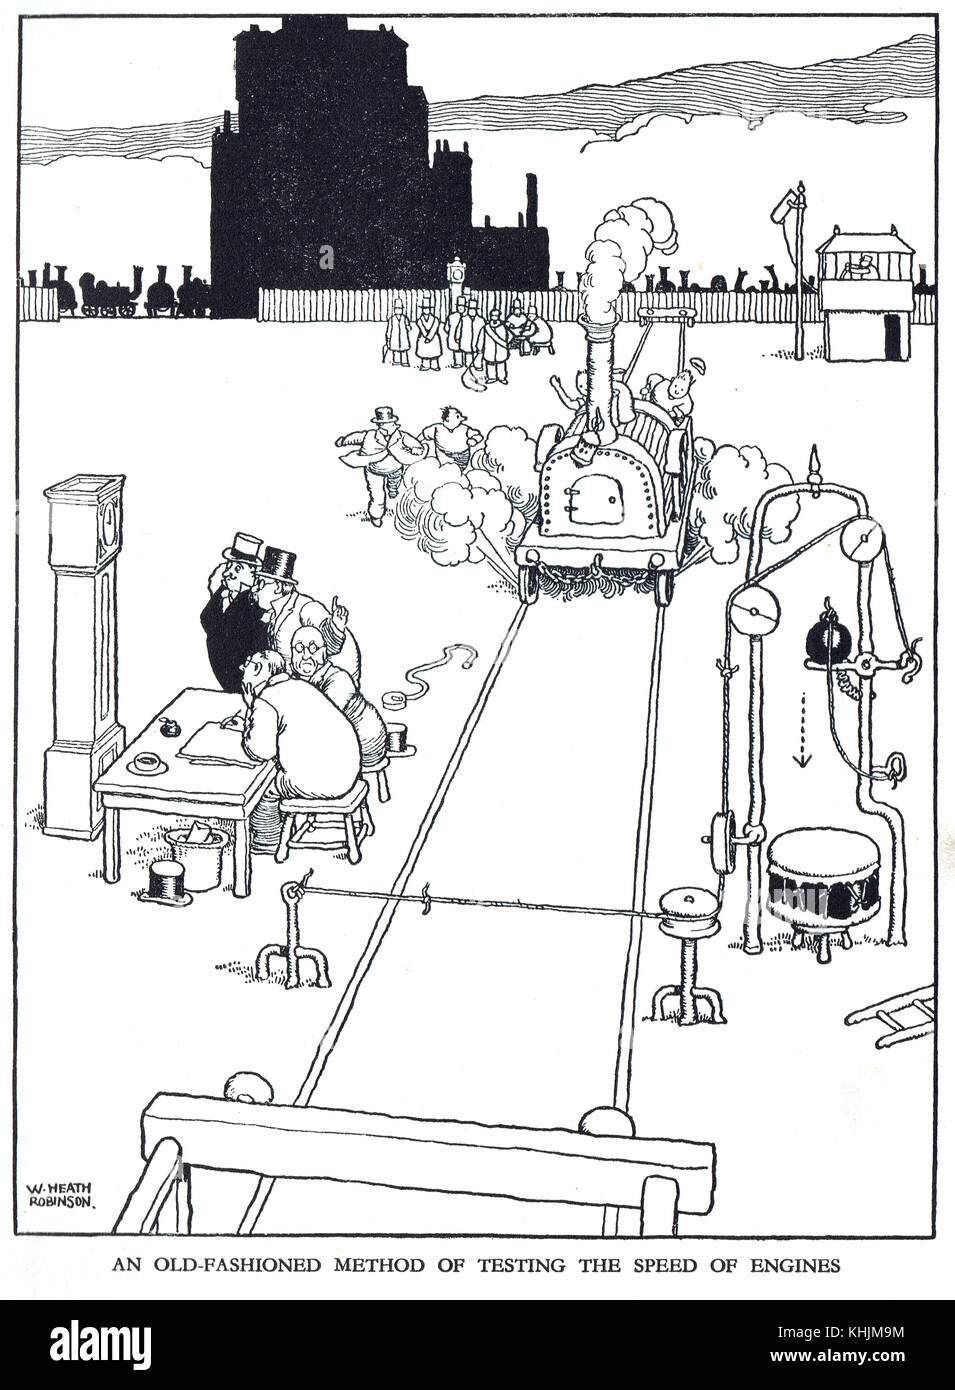 Old fashioned method of testing the speed of engines, Cartoon by William Heath Robinson - Stock Image